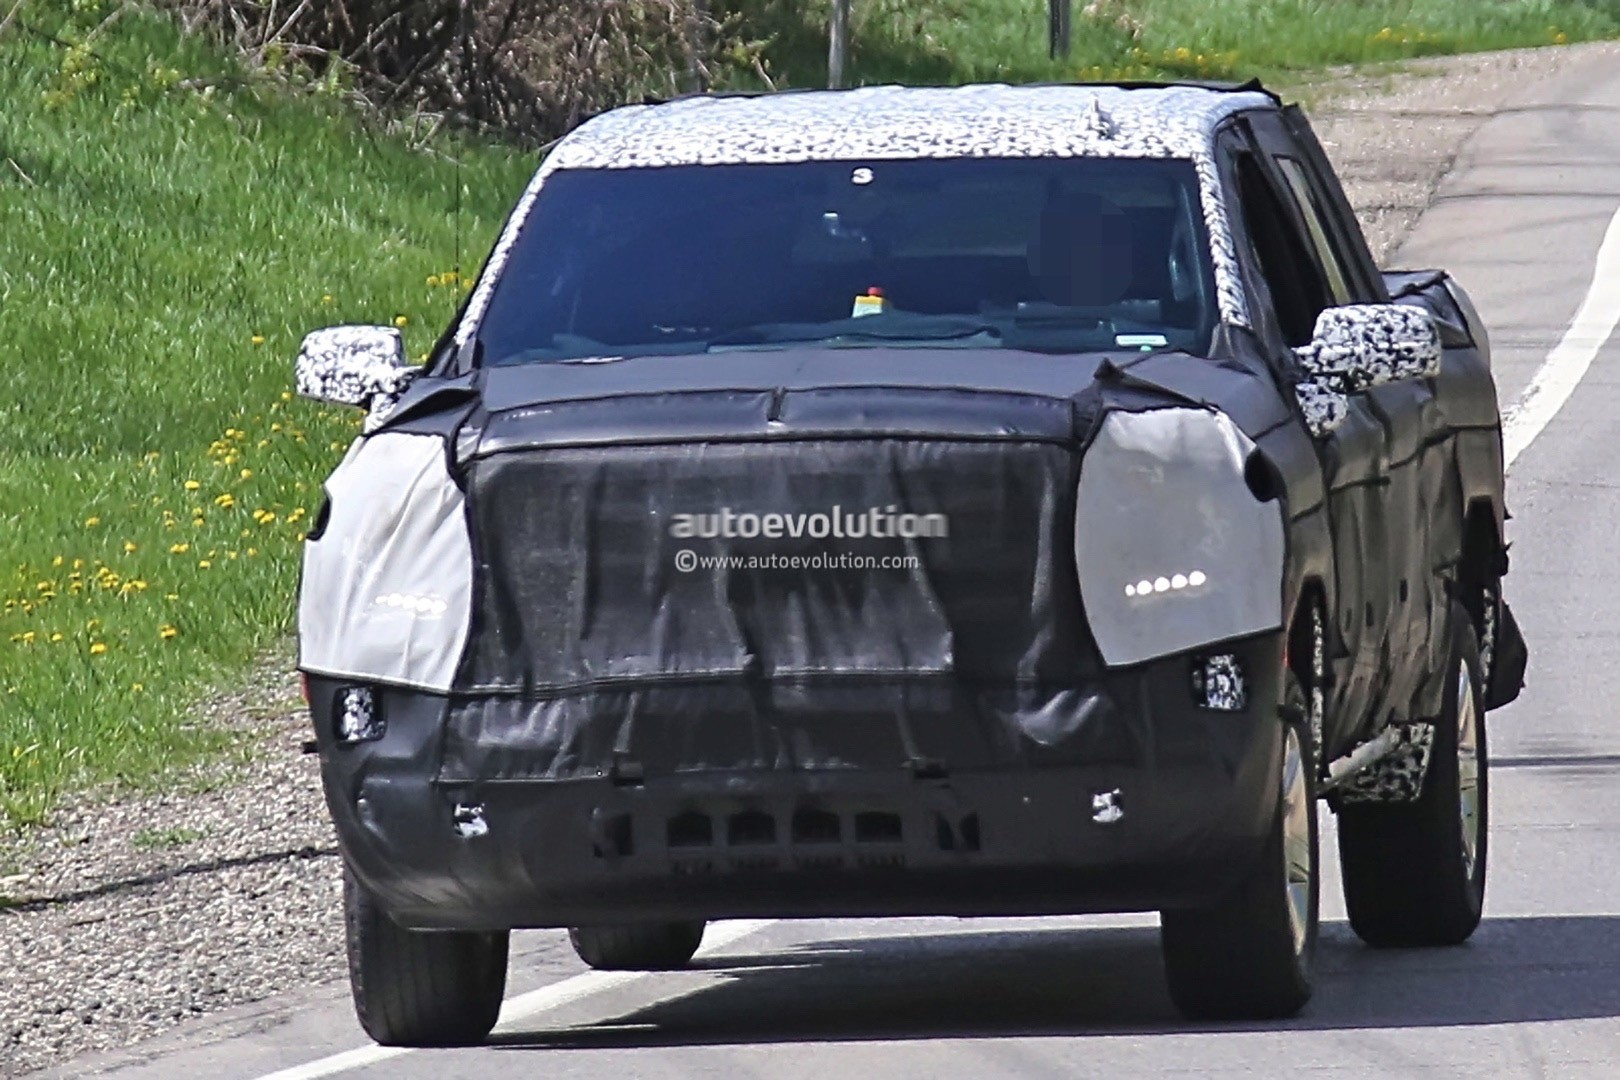 2019 Chevrolet Silverado Spied, Dual- And Side-Exit ...